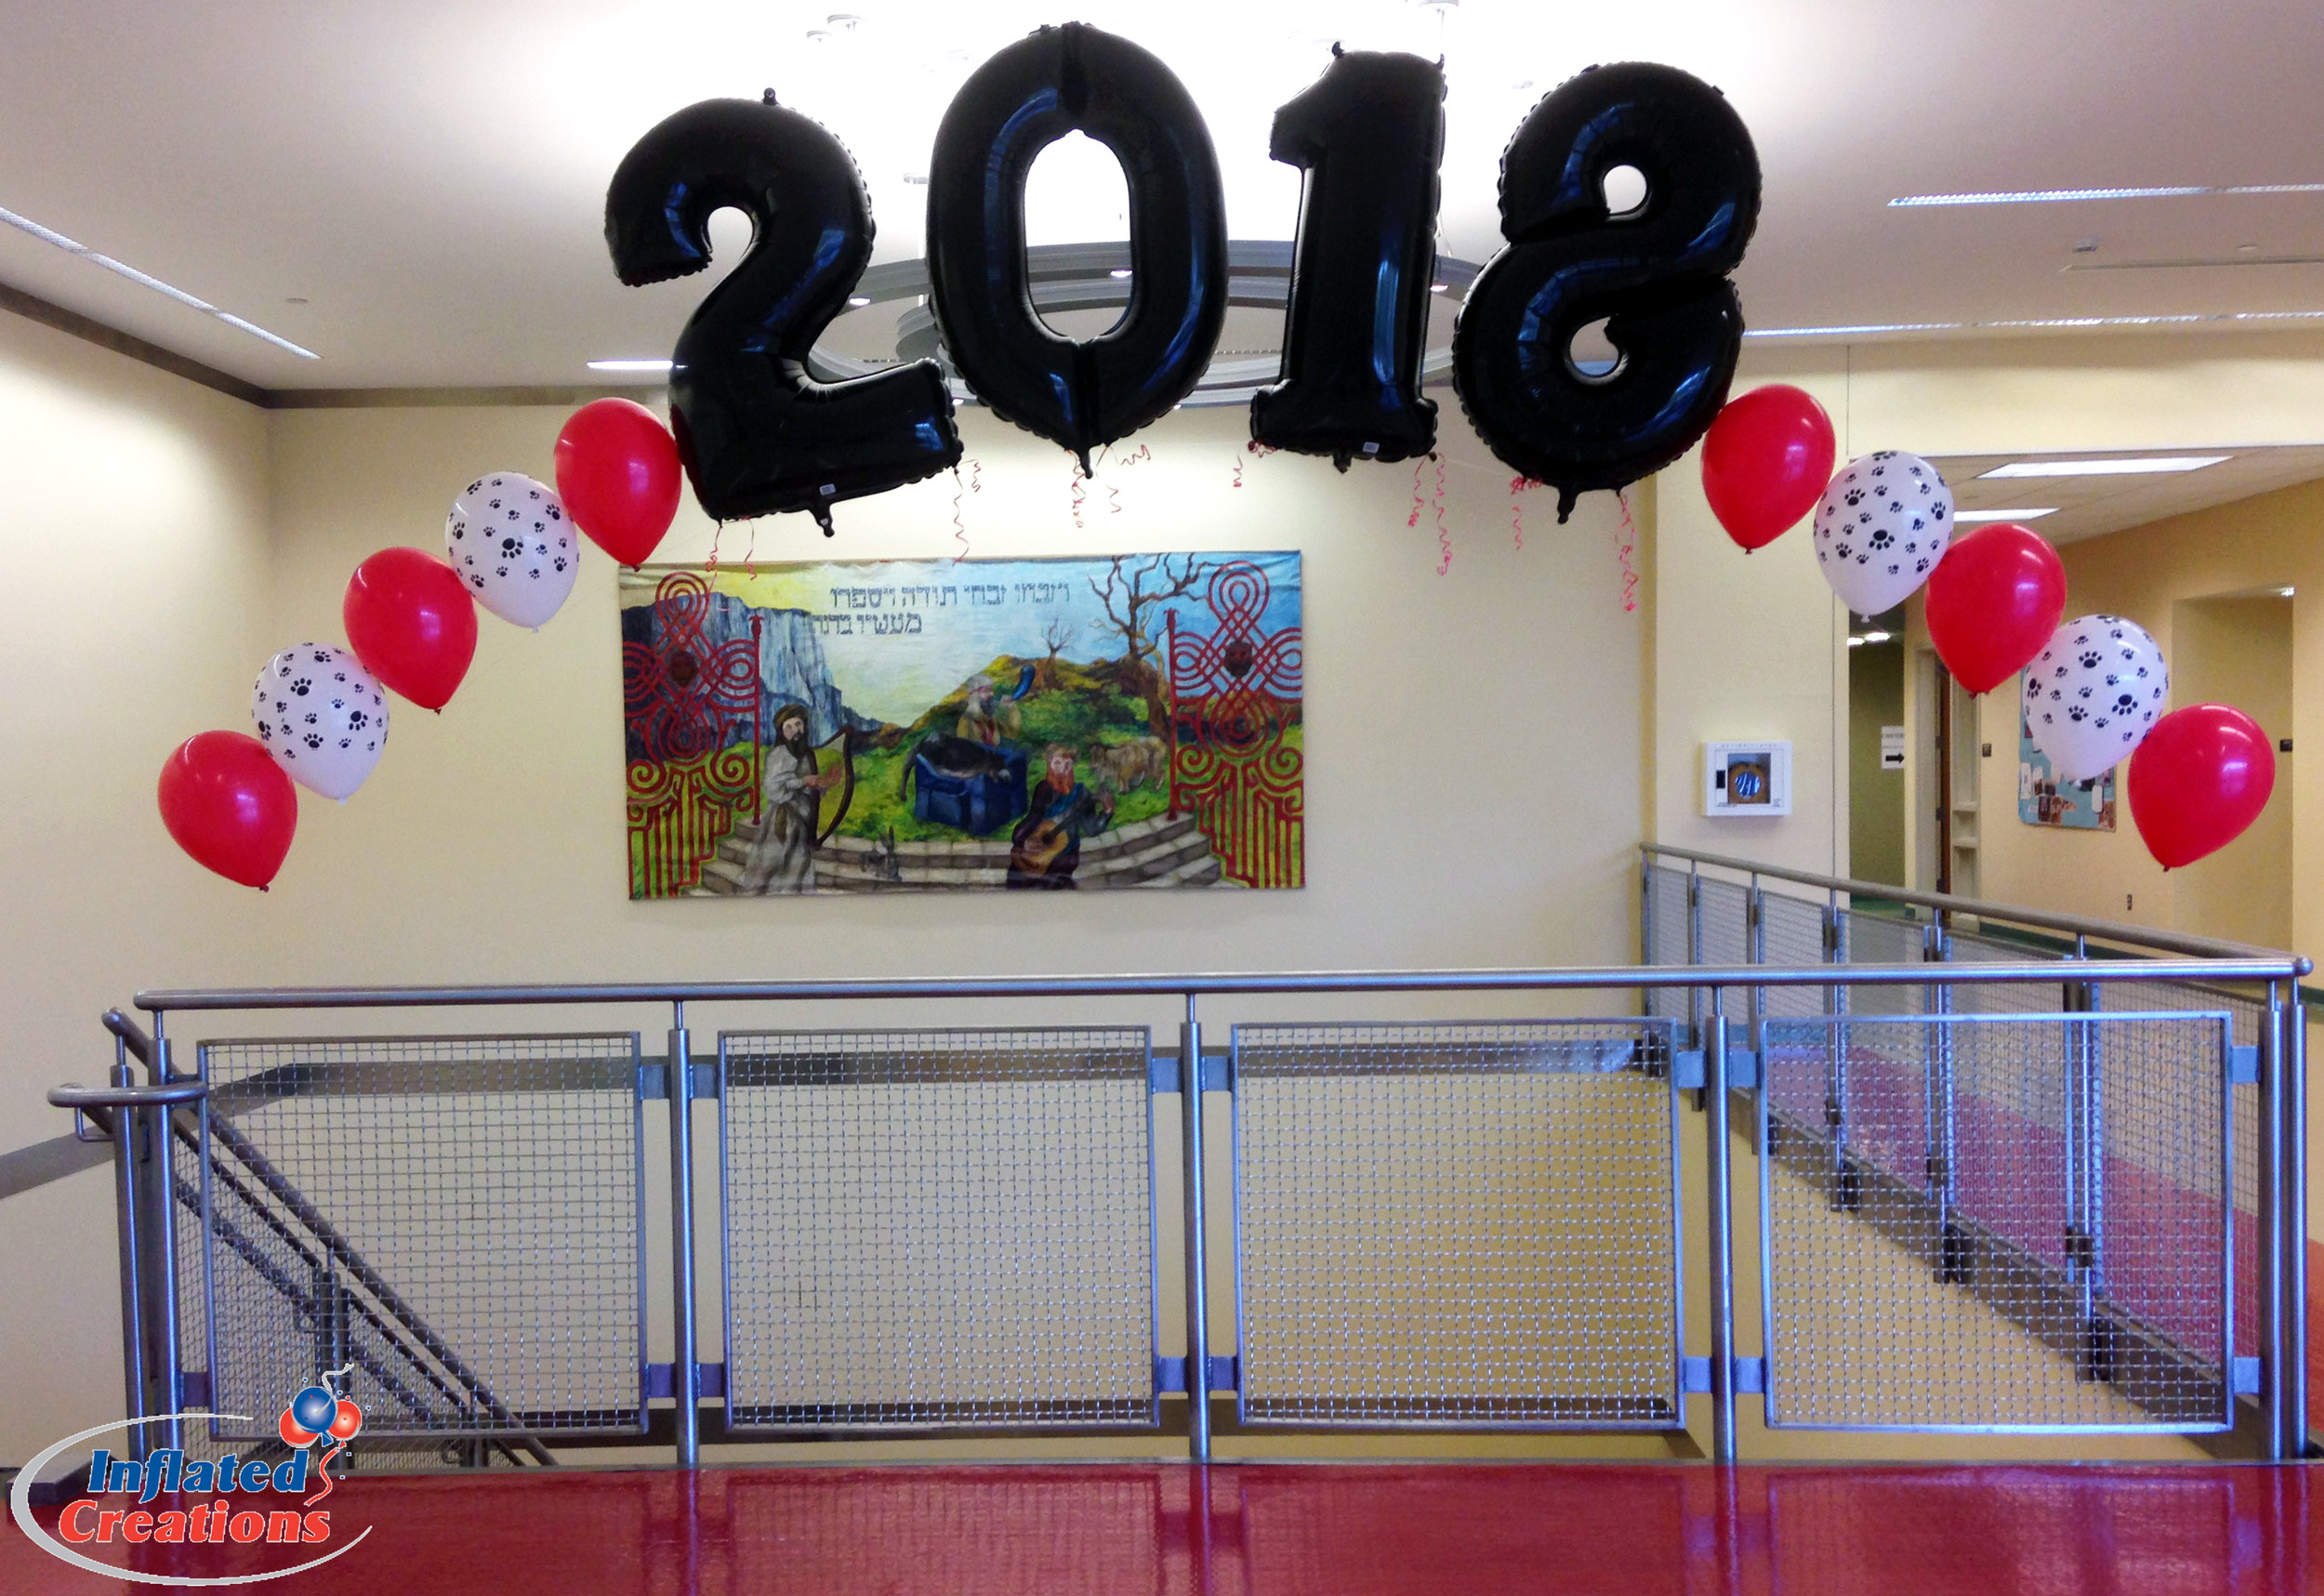 Megaloon Numbers - 2018 Balloon Arch